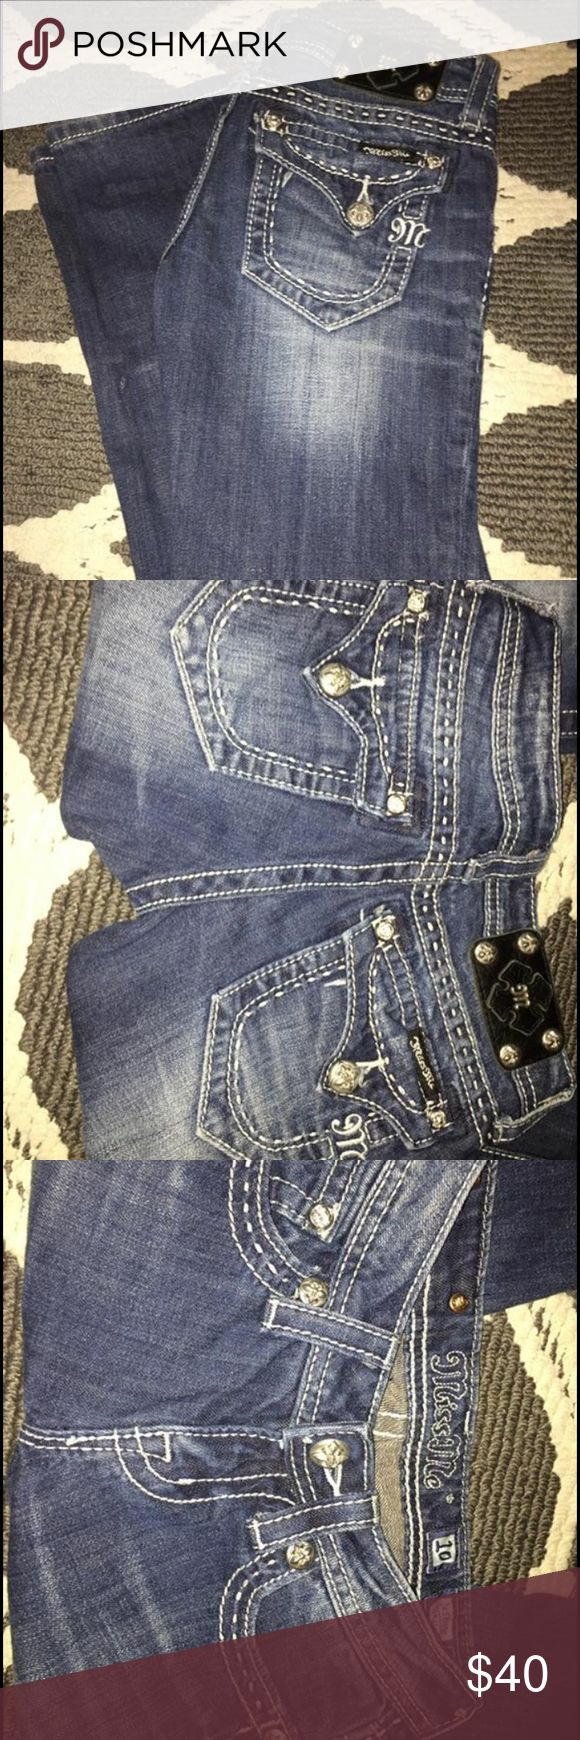 Selling this Girls Miss Me jeans on Poshmark! My username is: kenzee22. #shopmycloset #poshmark #fashion #shopping #style #forsale #Miss Me #Other